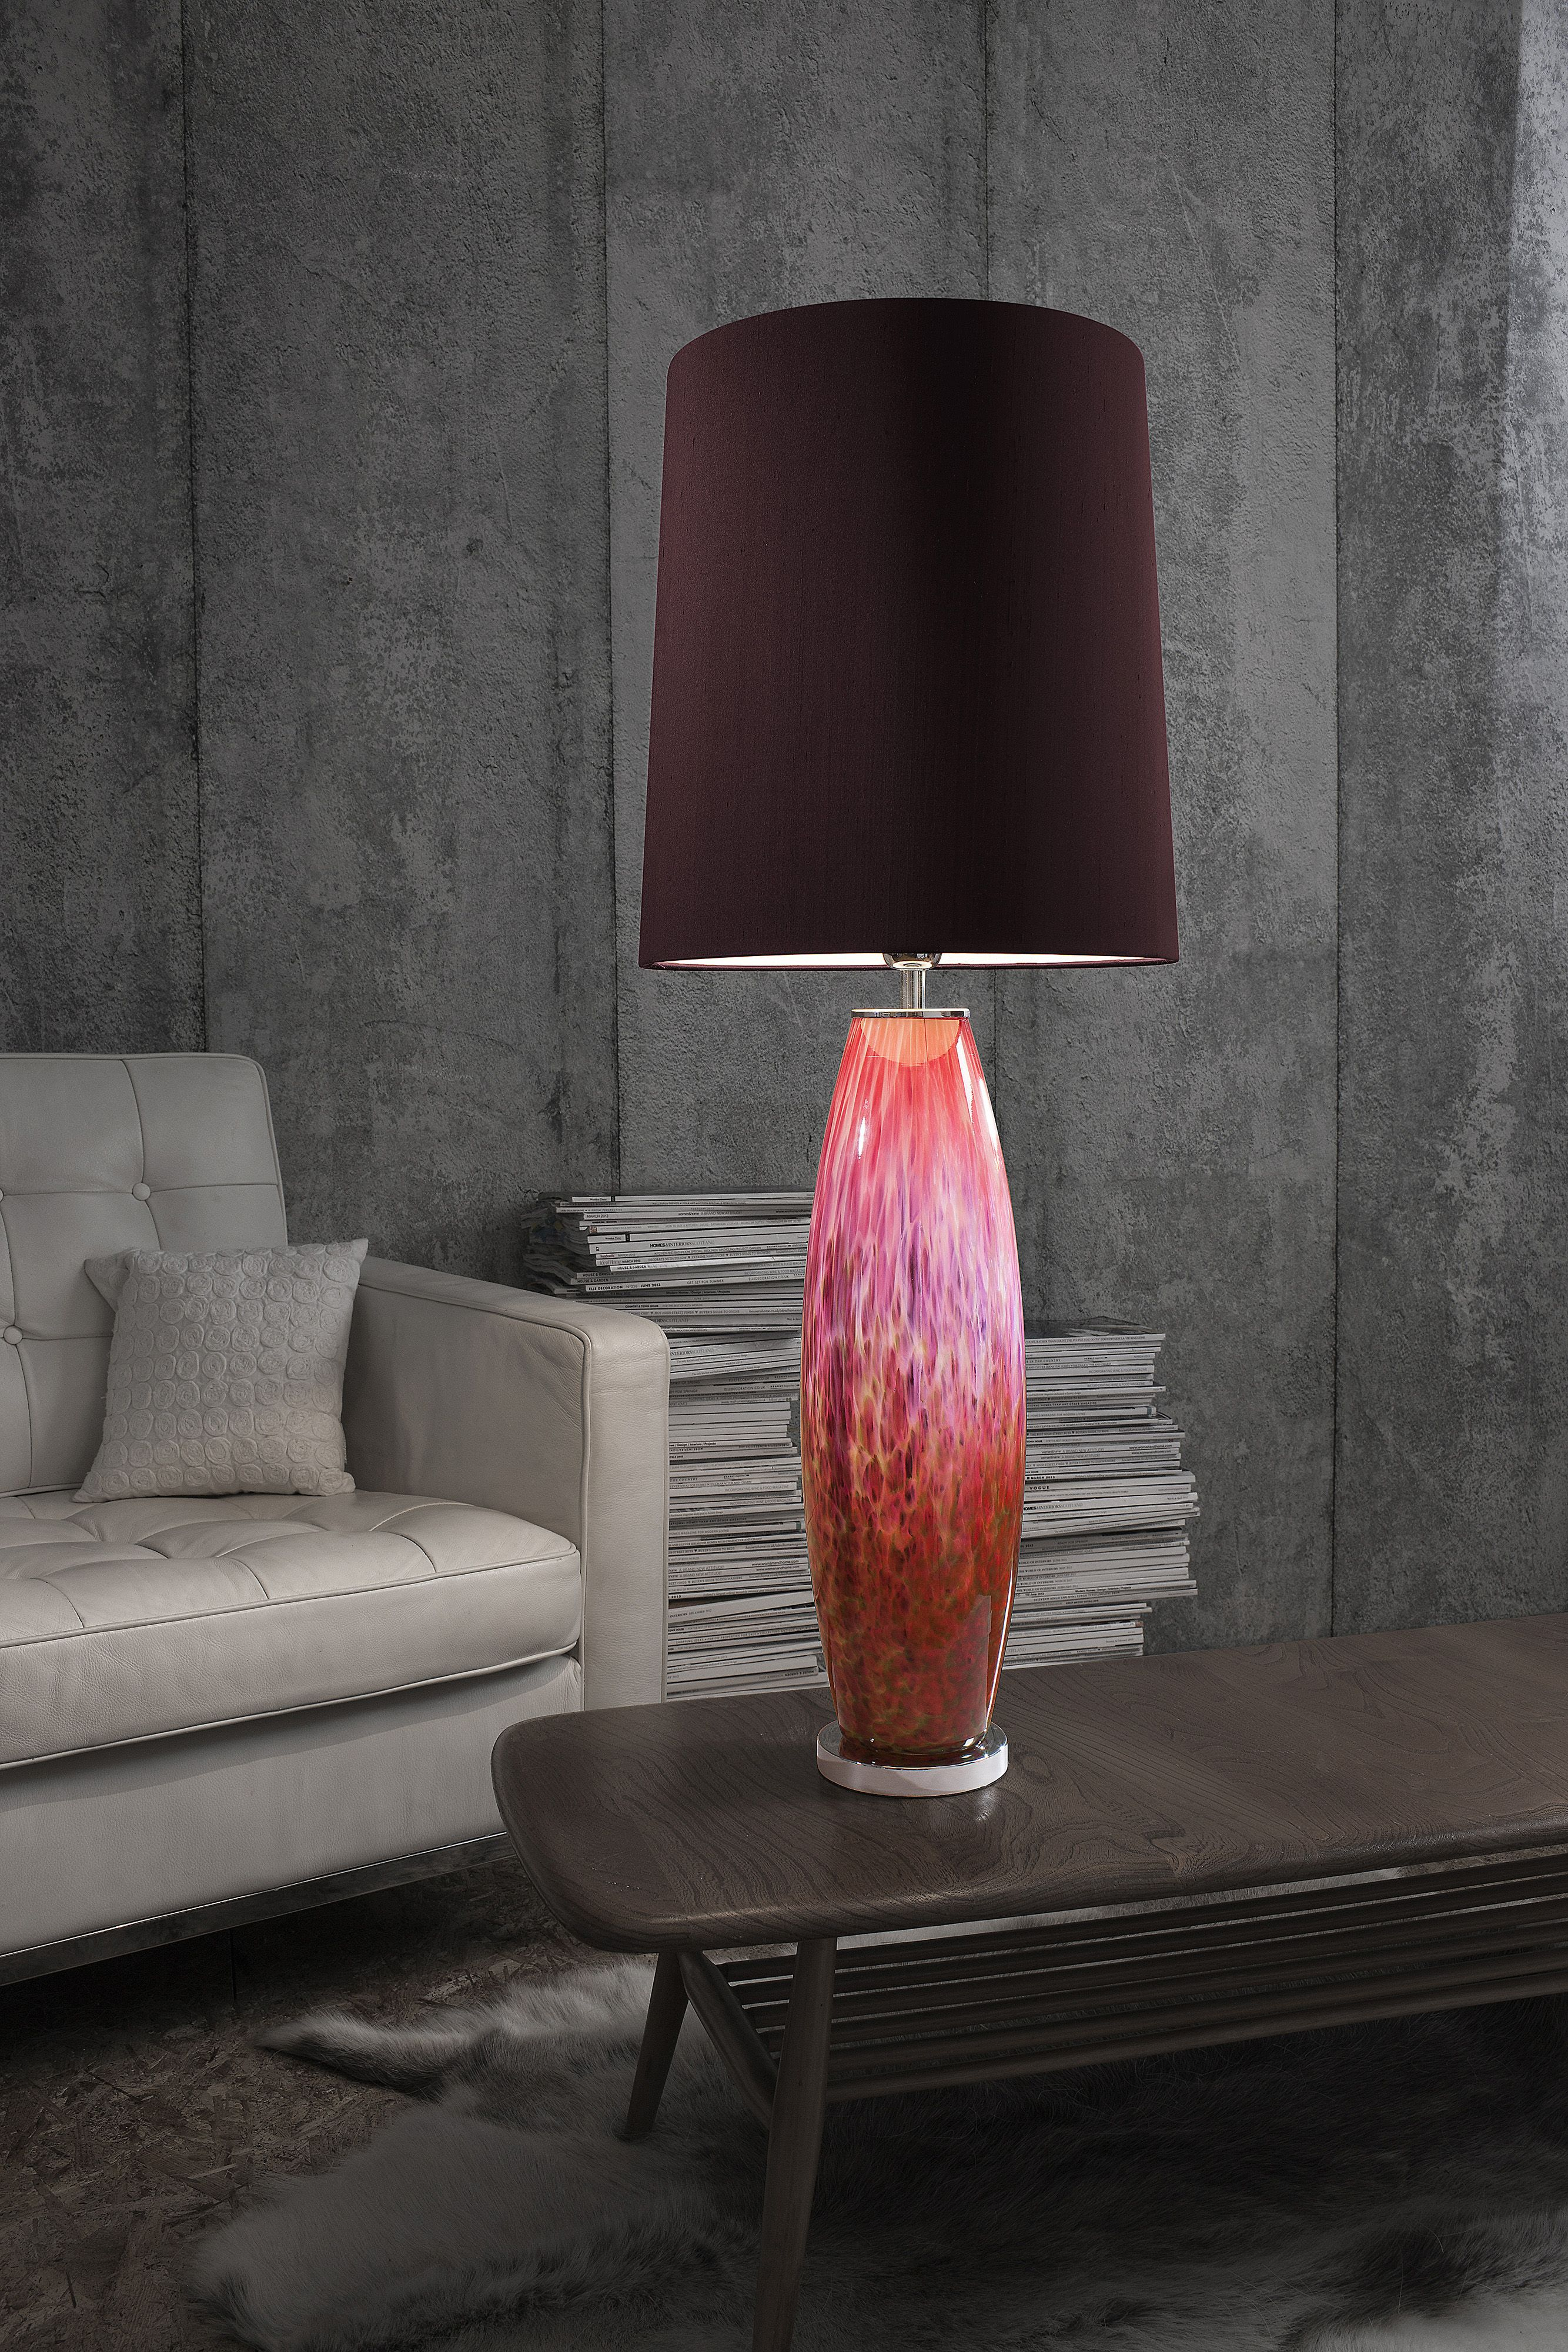 The provence table lamp range is available in three decorative the provence table lamp range is available in three decorative colours and finishes mould blown mozeypictures Gallery